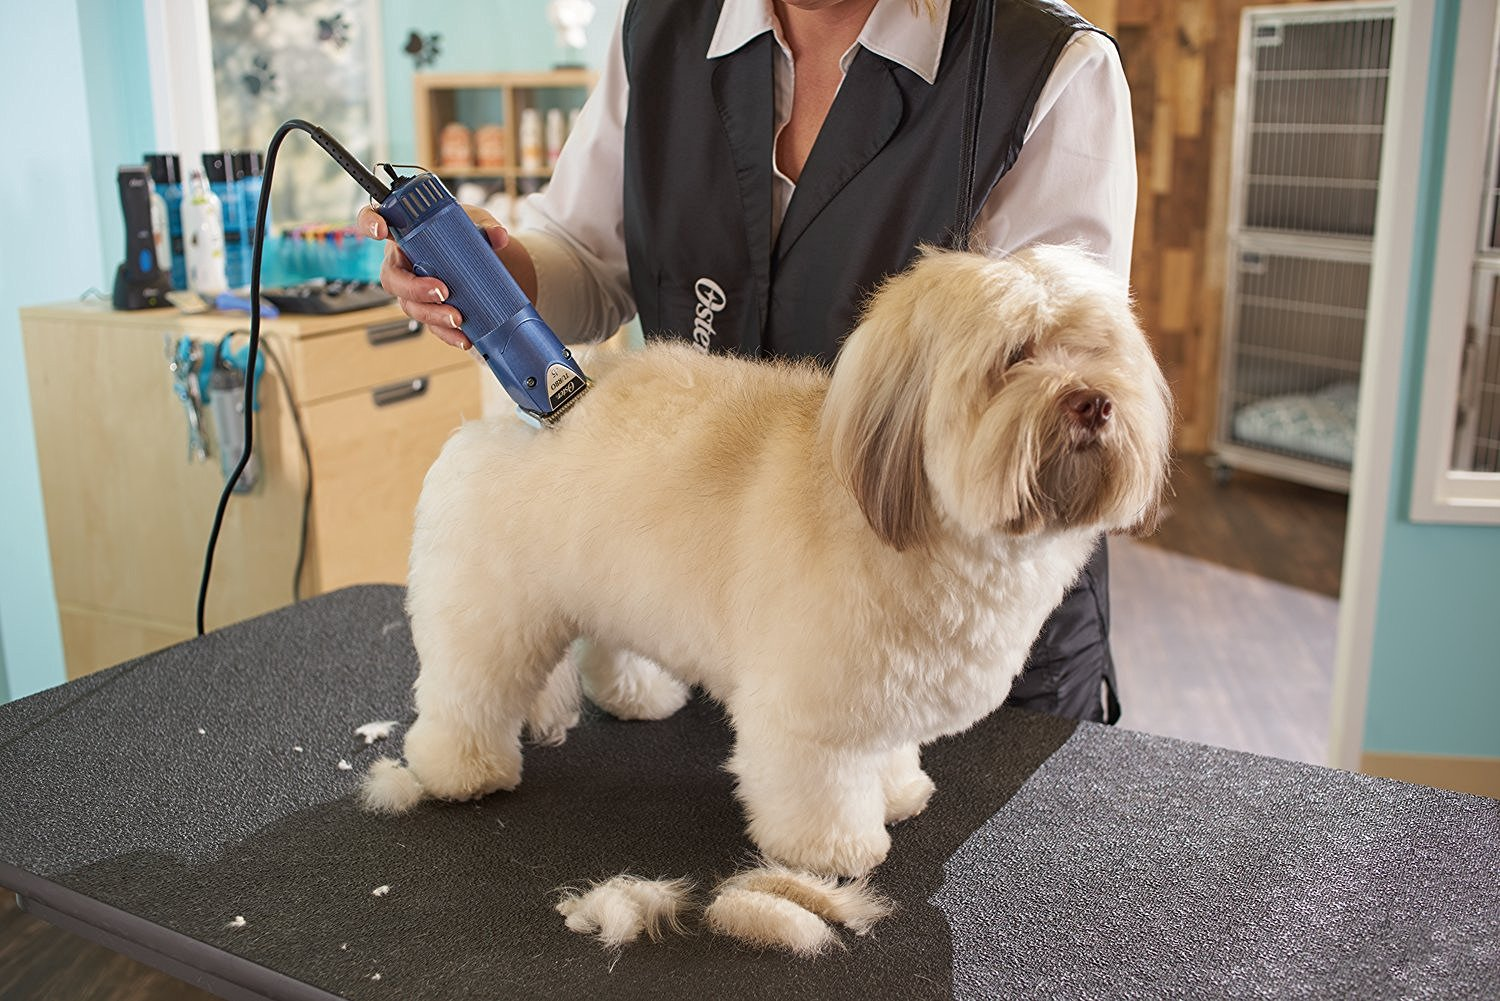 Heavy Duty Dog Clippers 5 Best For Thick Matted Coats